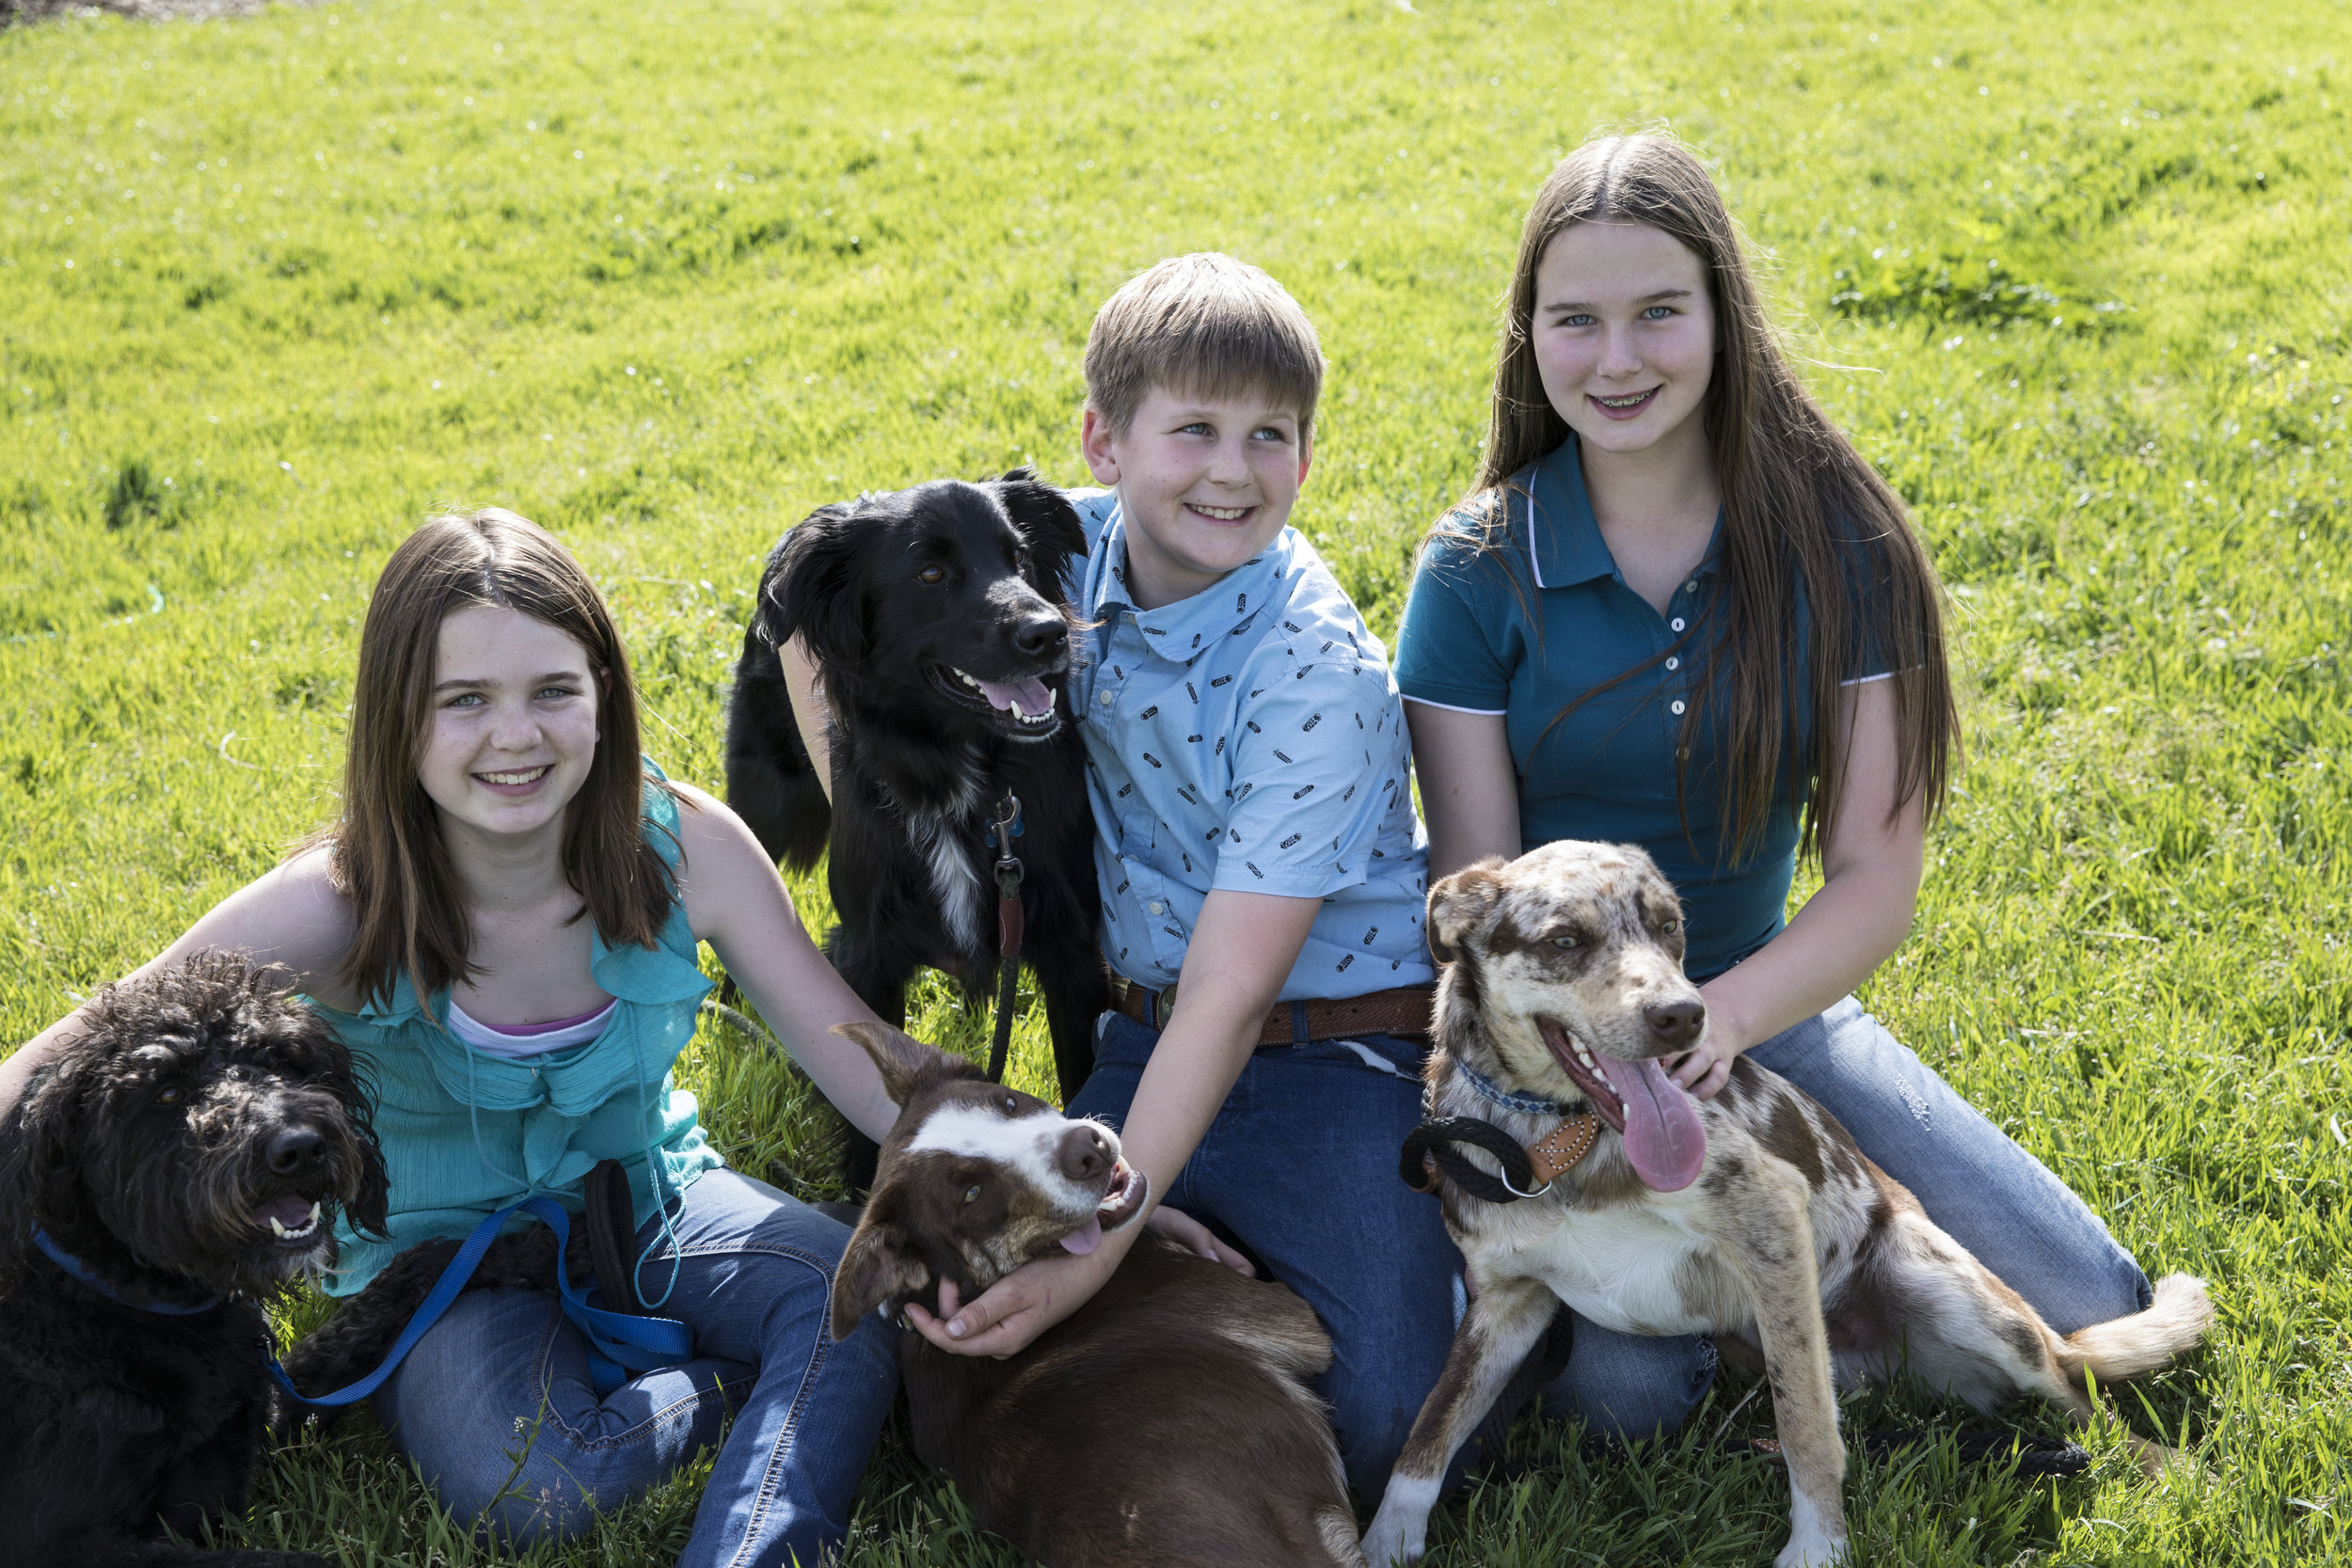 Juliet, Jake and Jacalyn Kaufman often accompany Dr. Kaufman on his practice. The dogs stay at home.